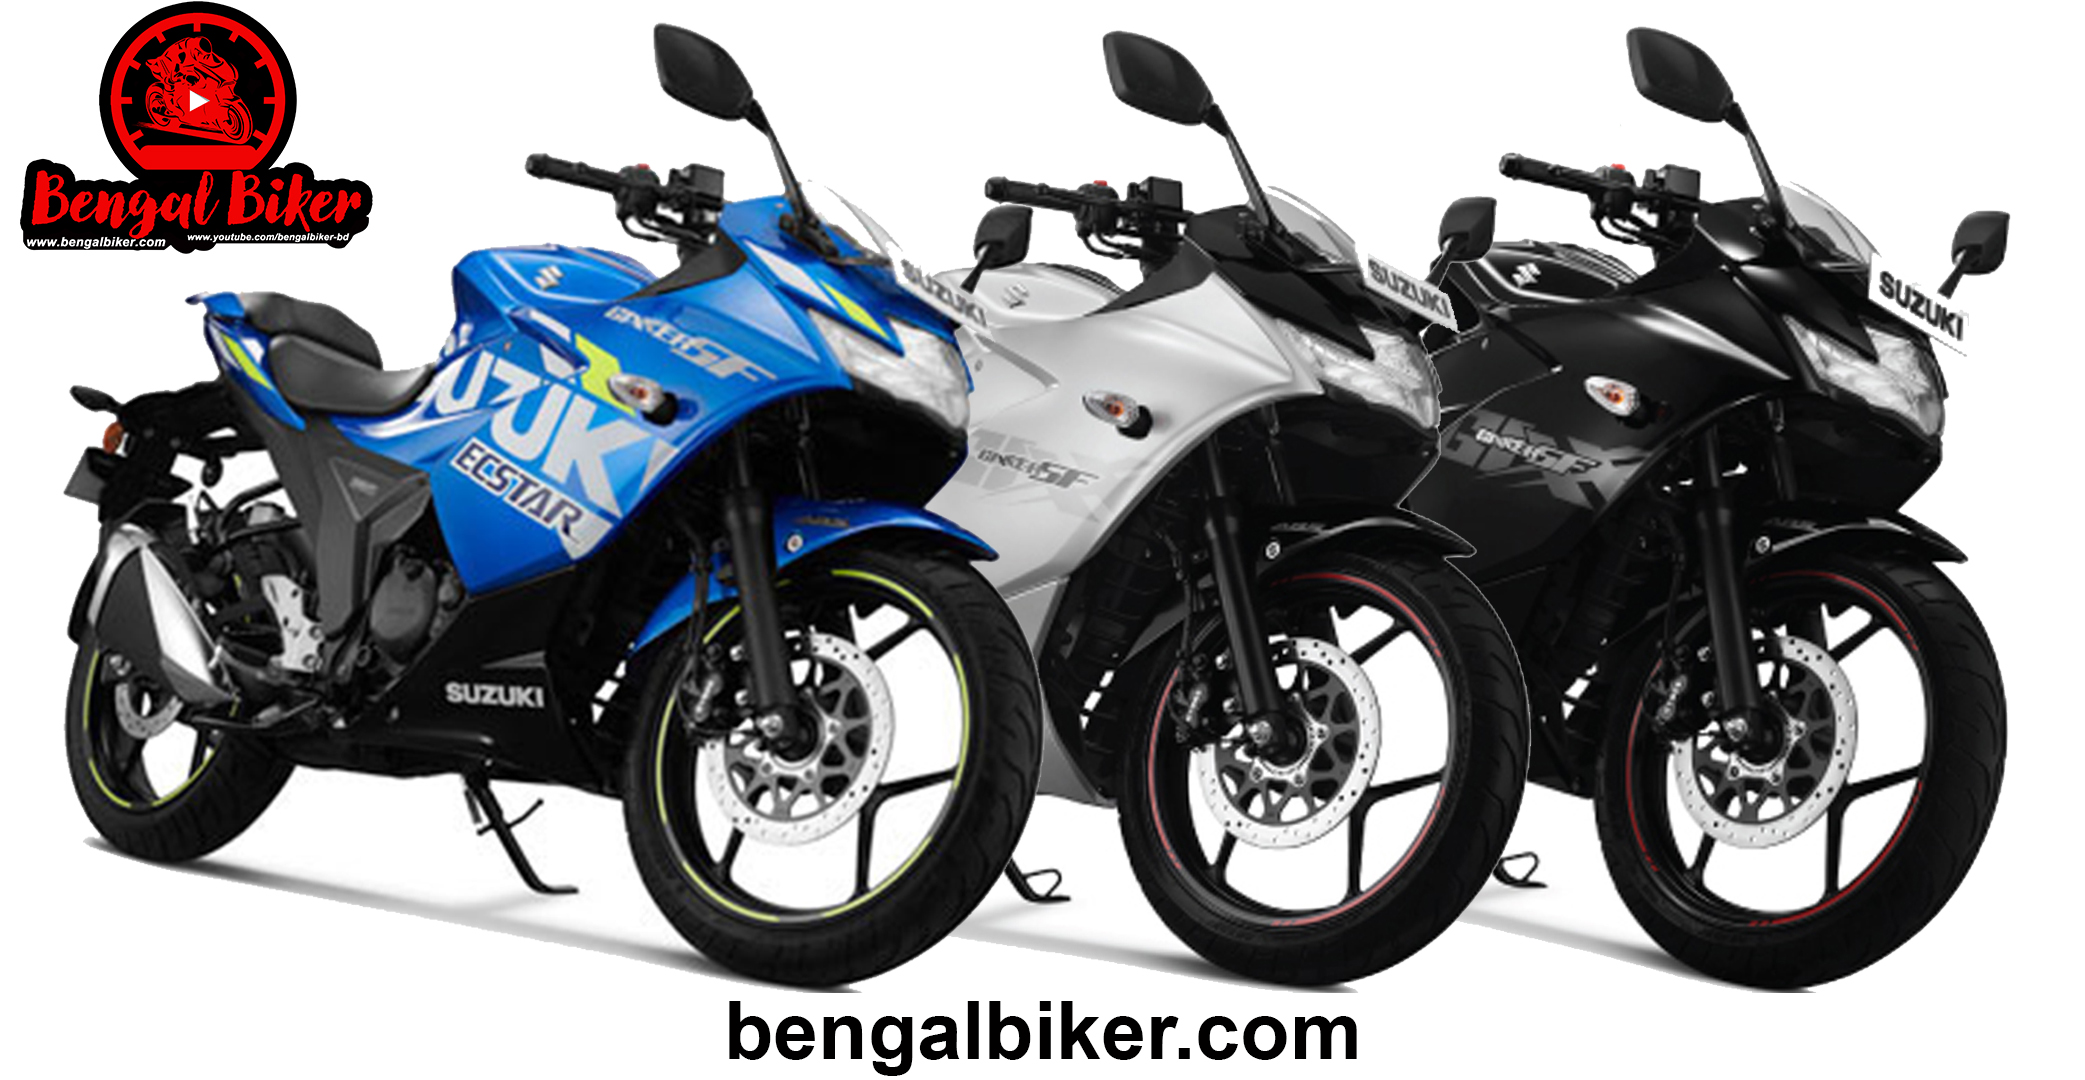 suzuki gixxer sf fi abs all color